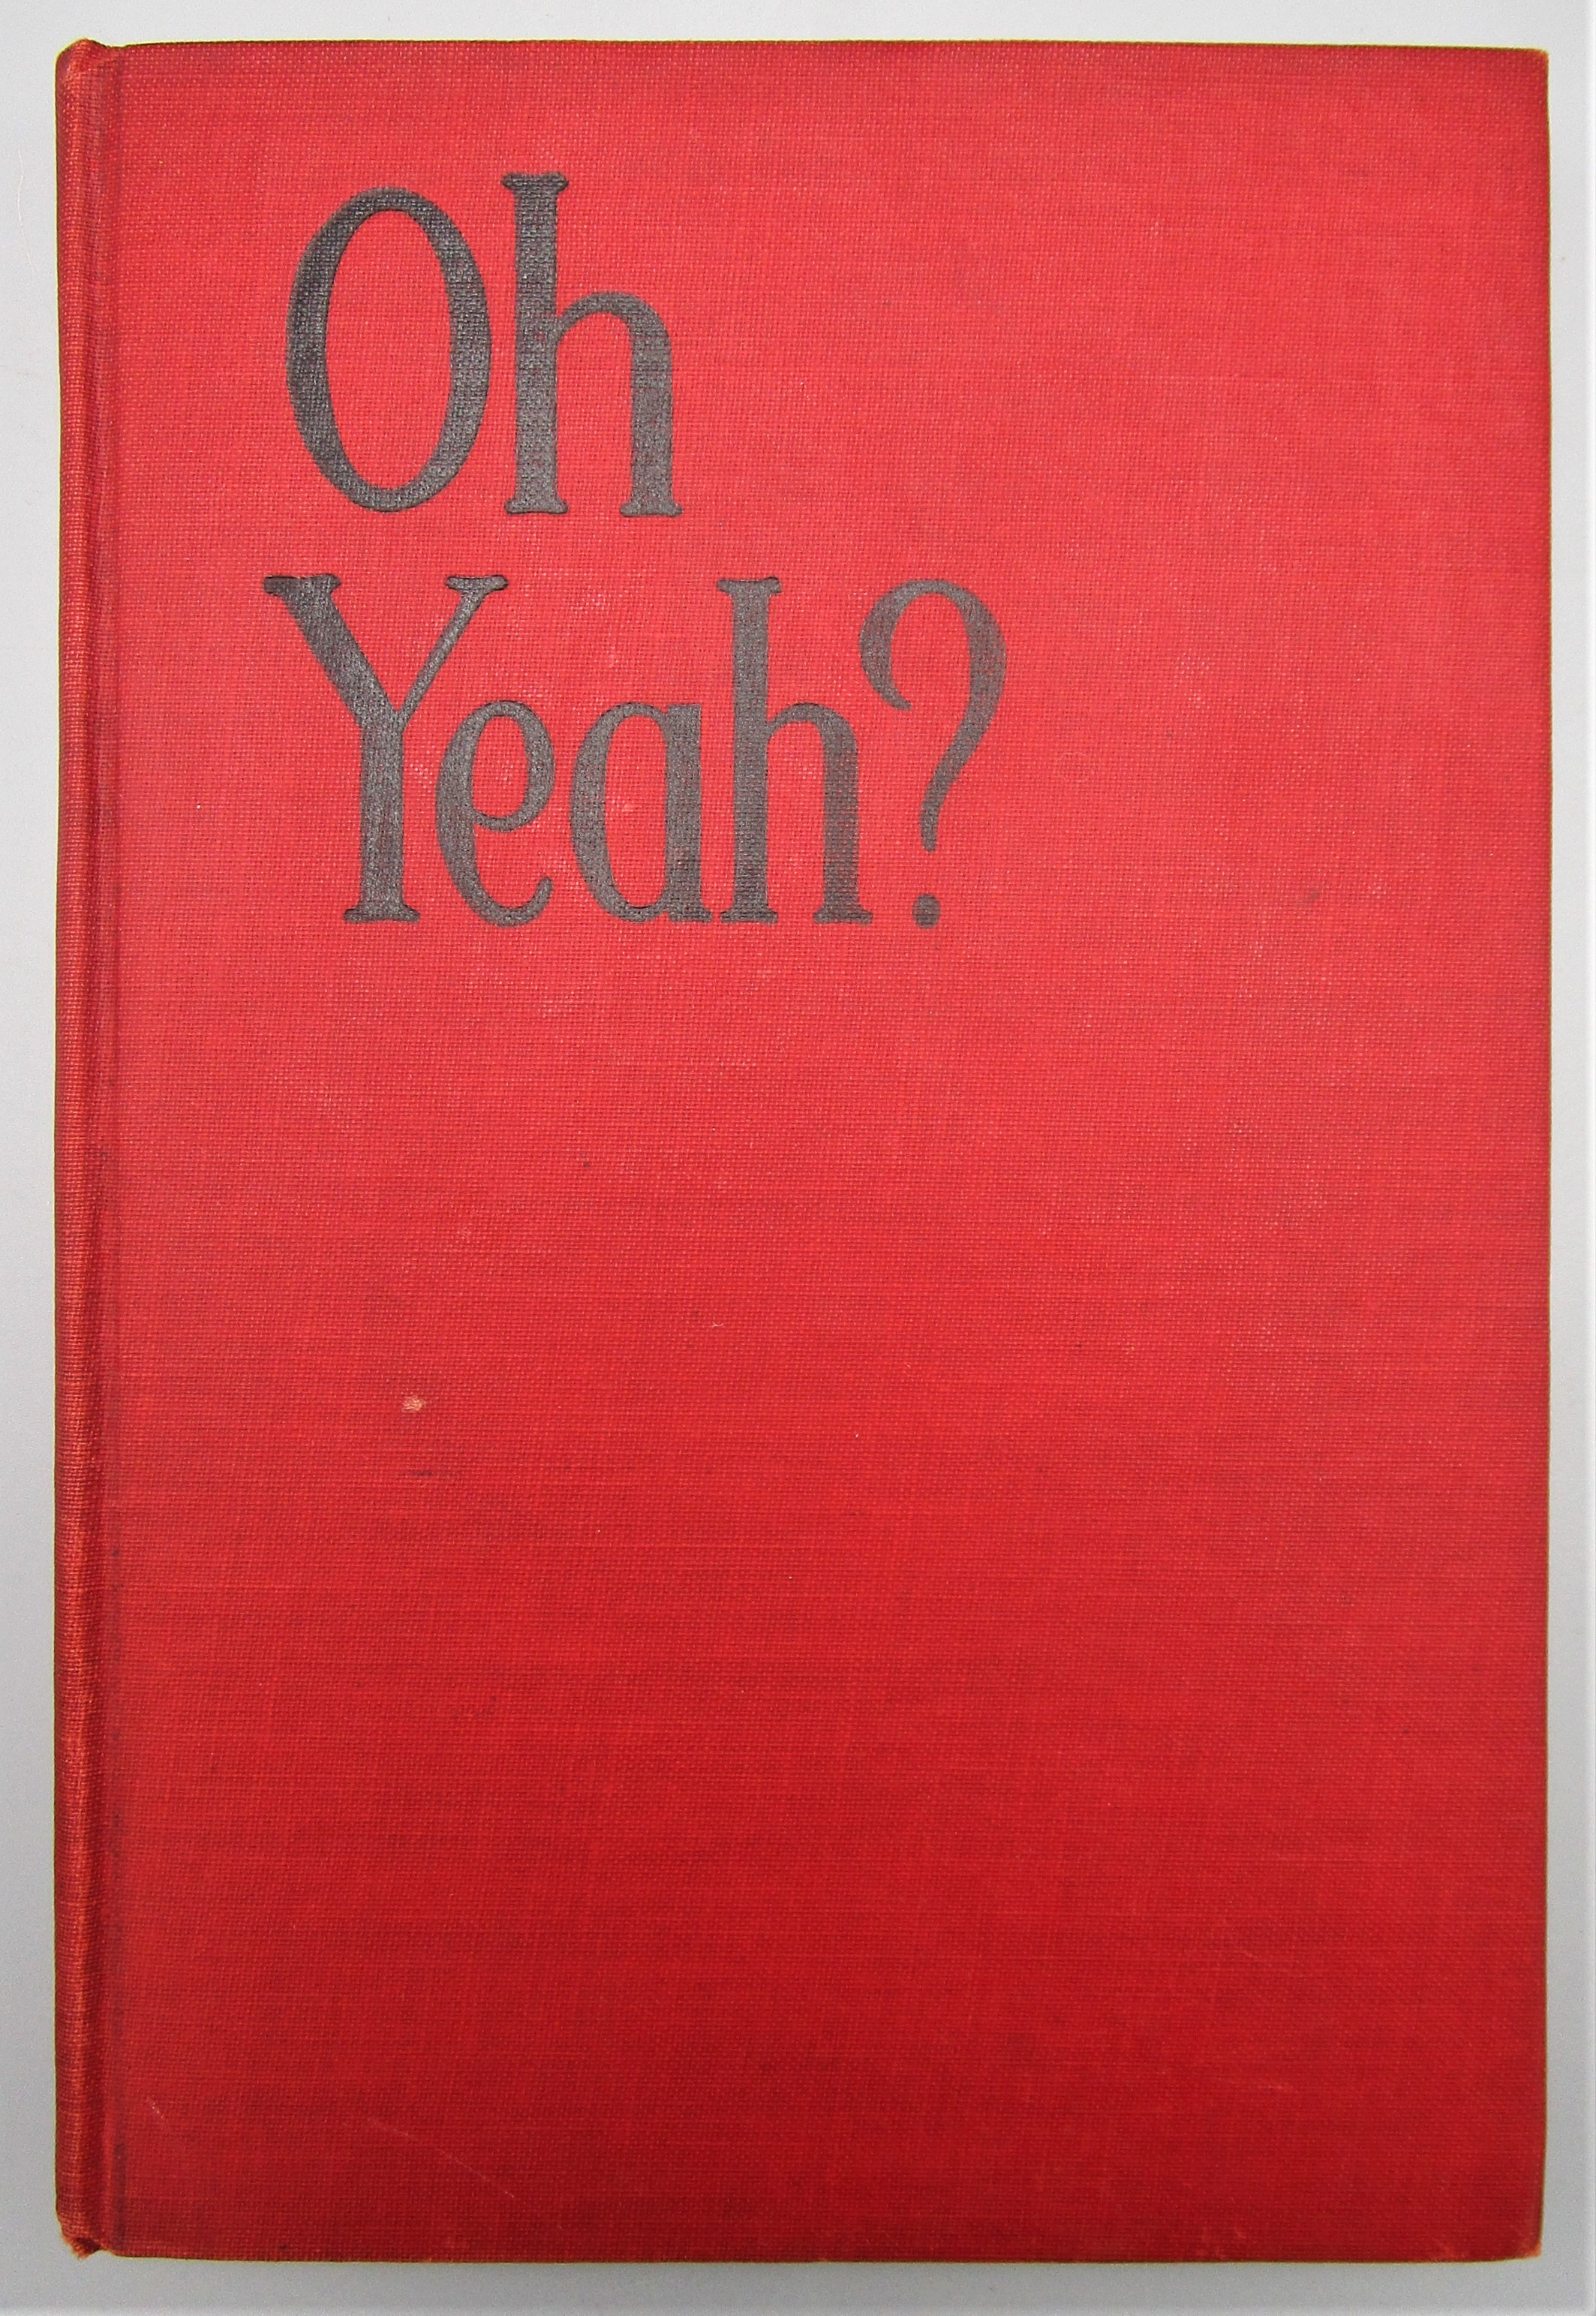 OH YEAH?, by Edward Angly - 1931 Second Printing